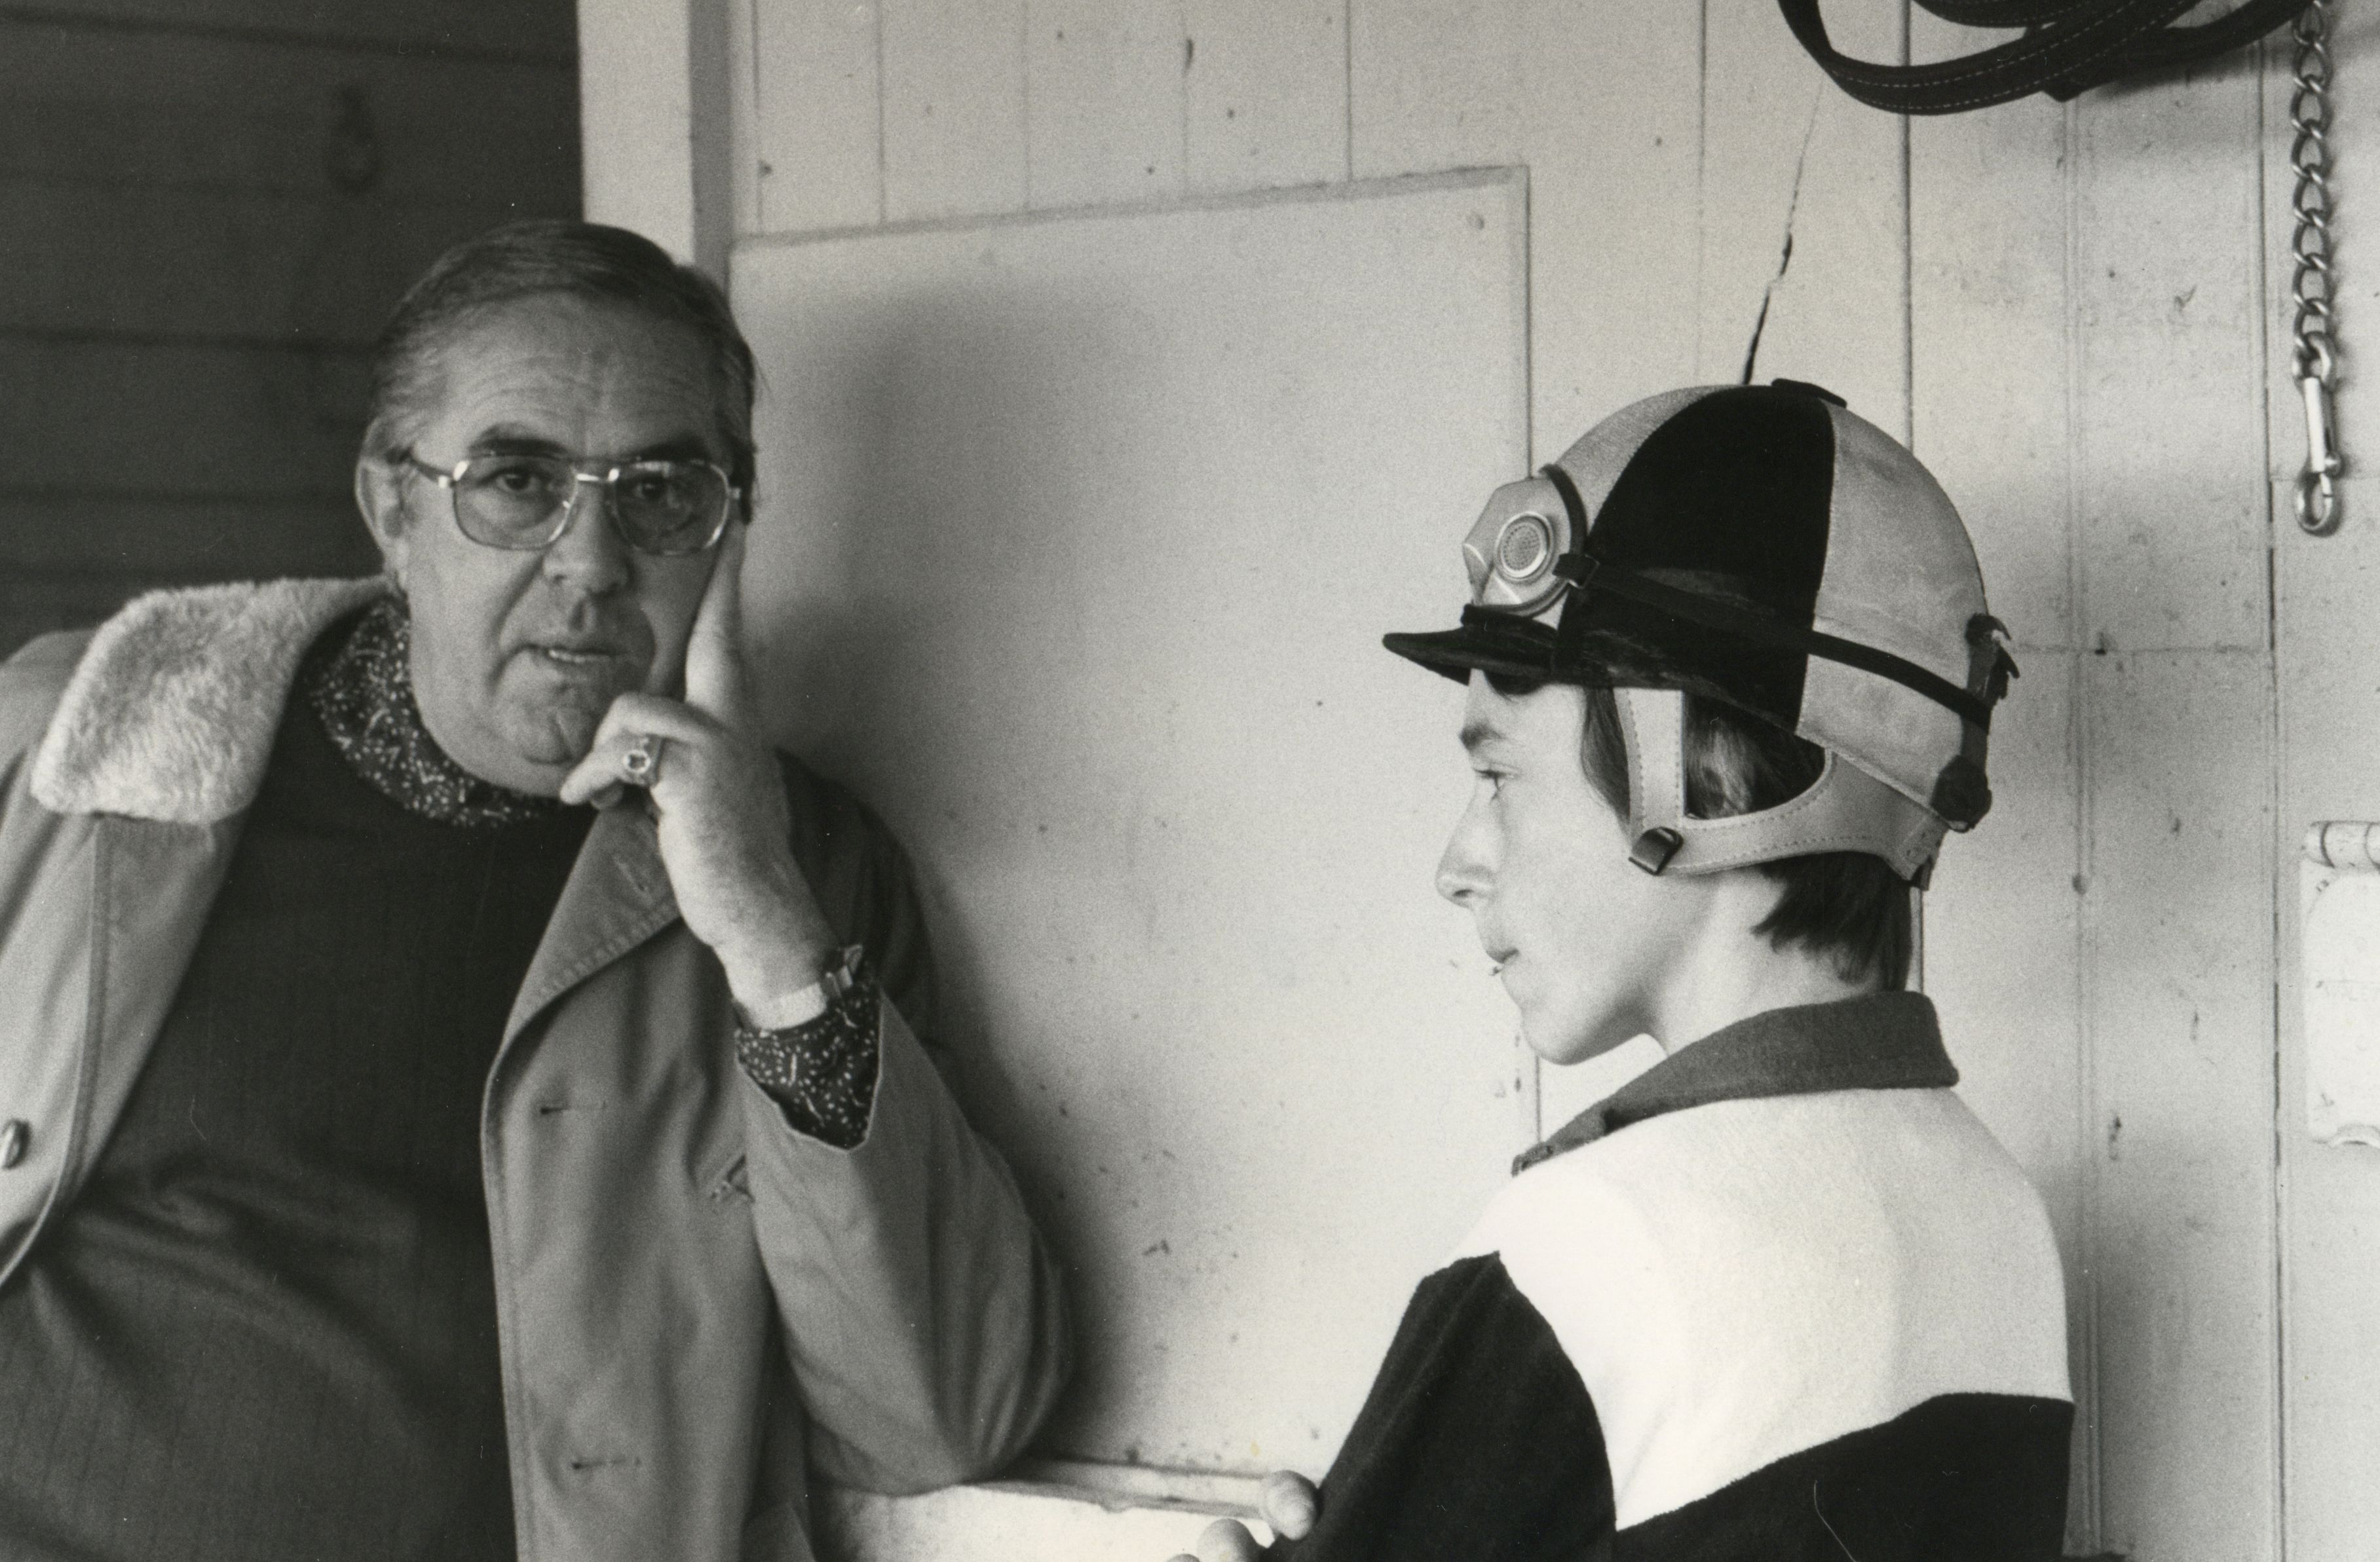 Laz Barrera and jockey Steve Cauthen (NYRA/Photo Communications /Museum Collection)